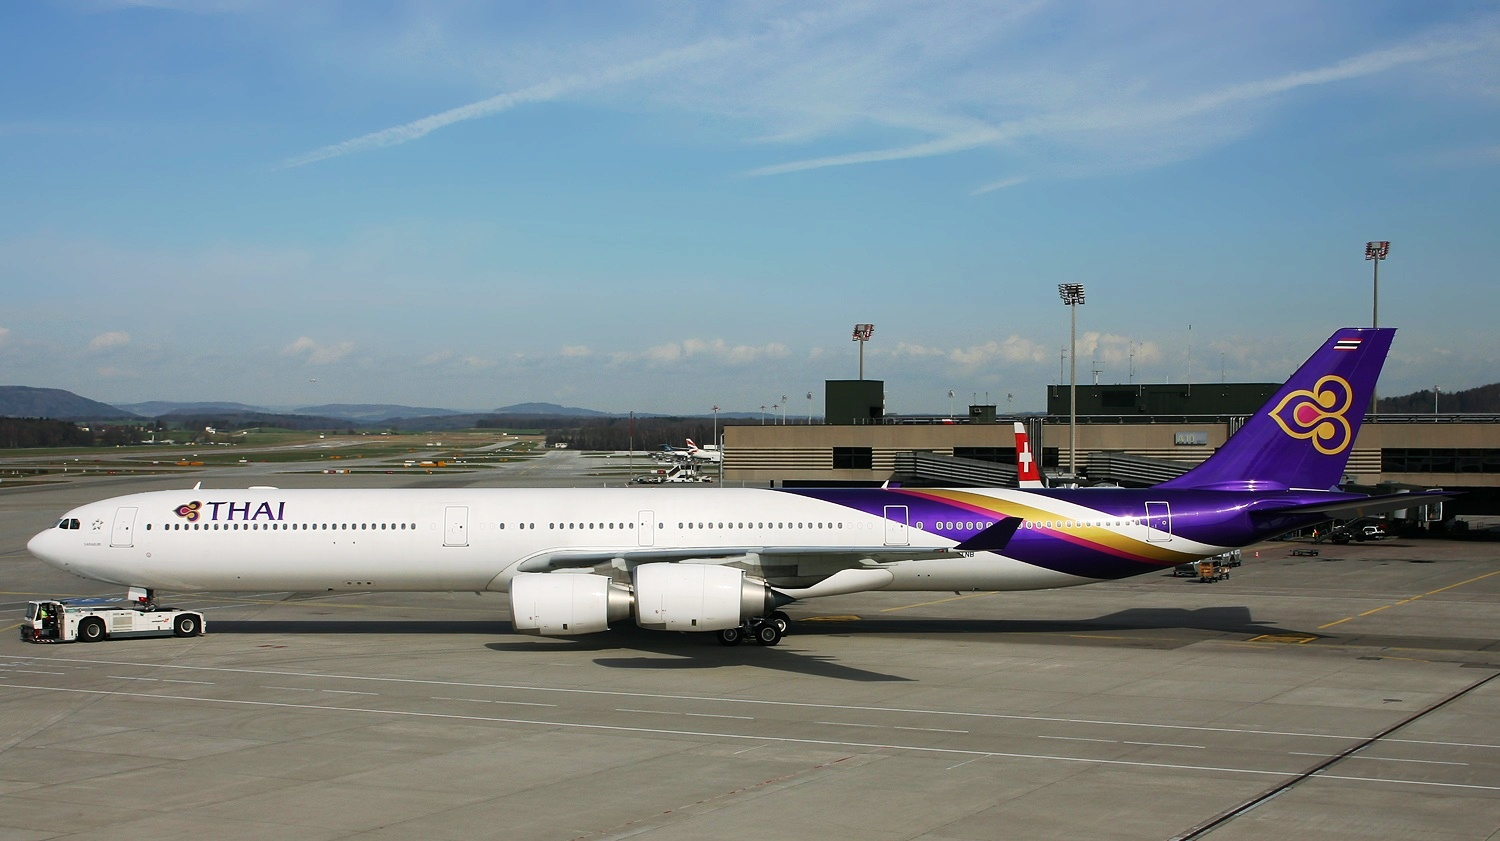 Jet Engine Hd Wallpaper Airbus A340 600 Of Thai Airways Aircraft Wallpaper 1788